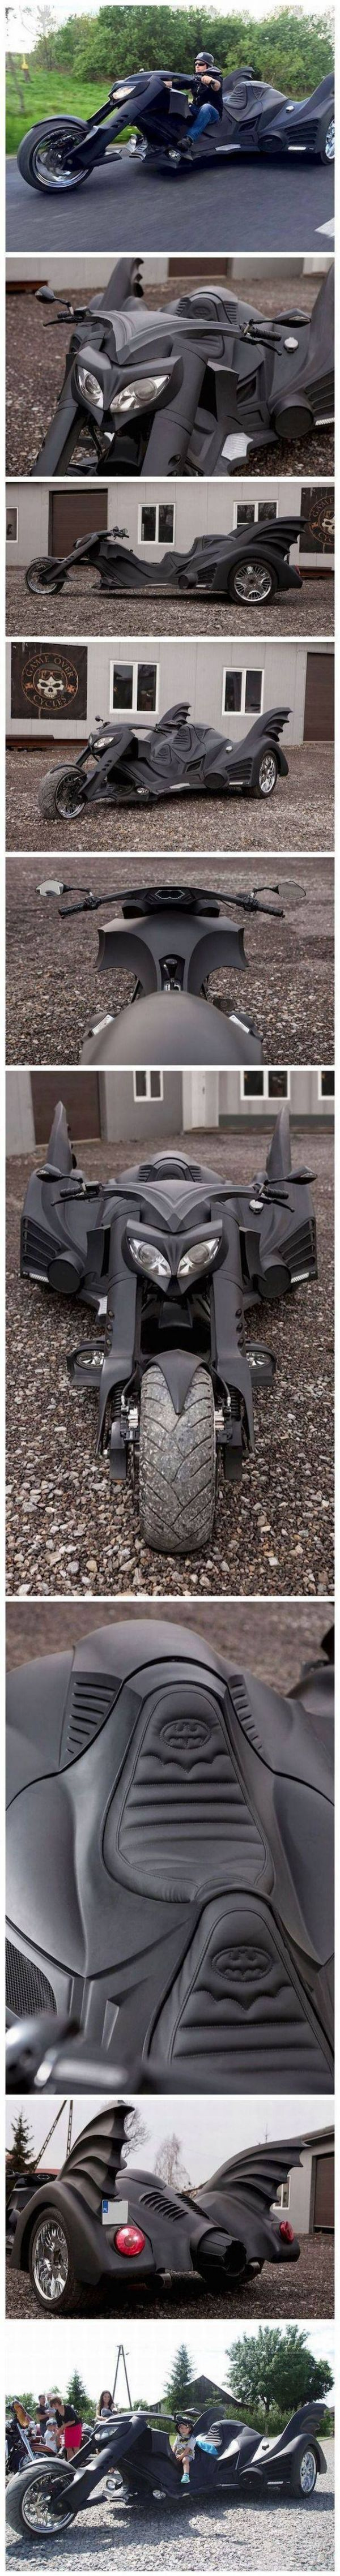 Batman, Trike, motorcycle